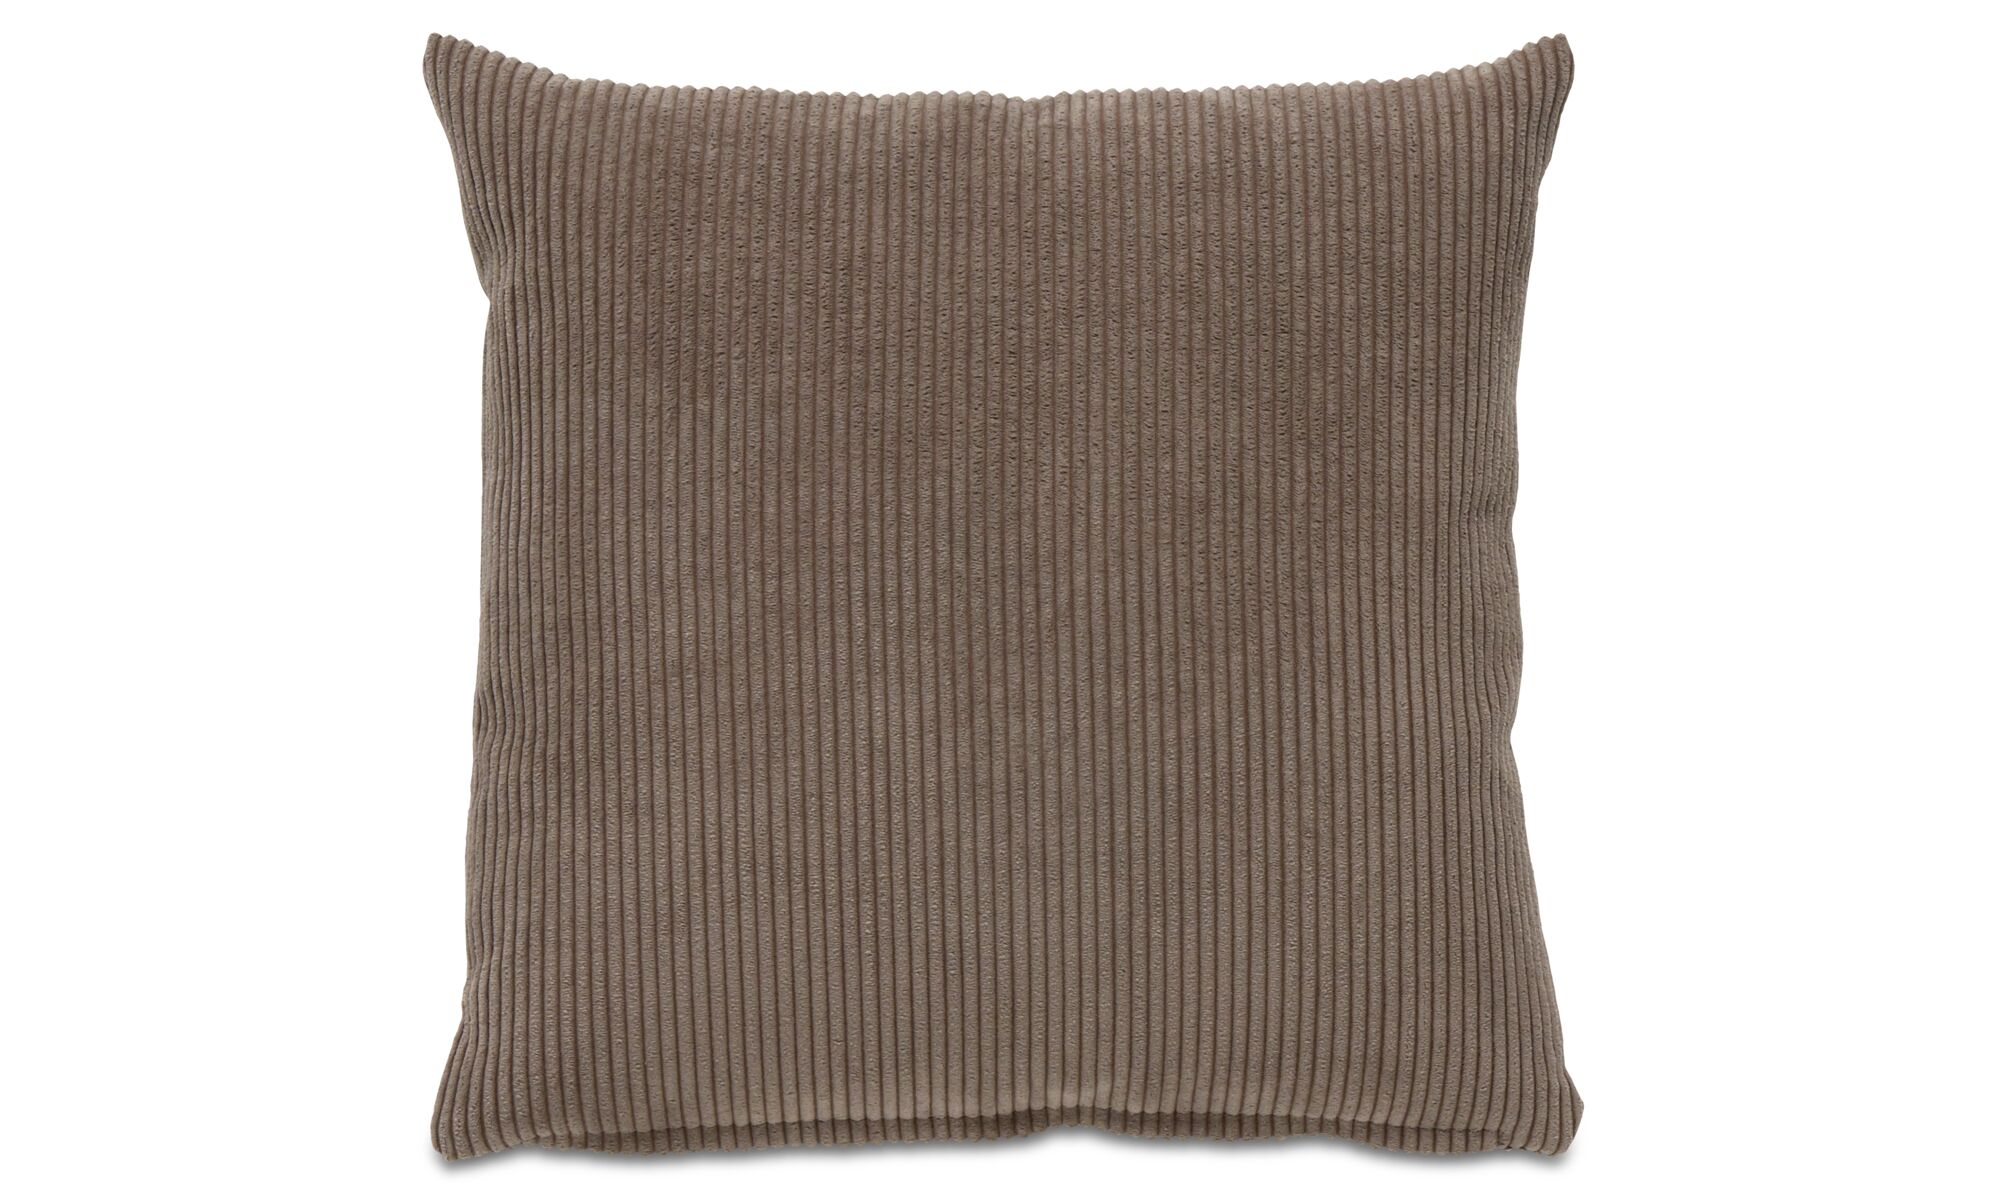 Cushions - Cord cushion - Brown - Fabric